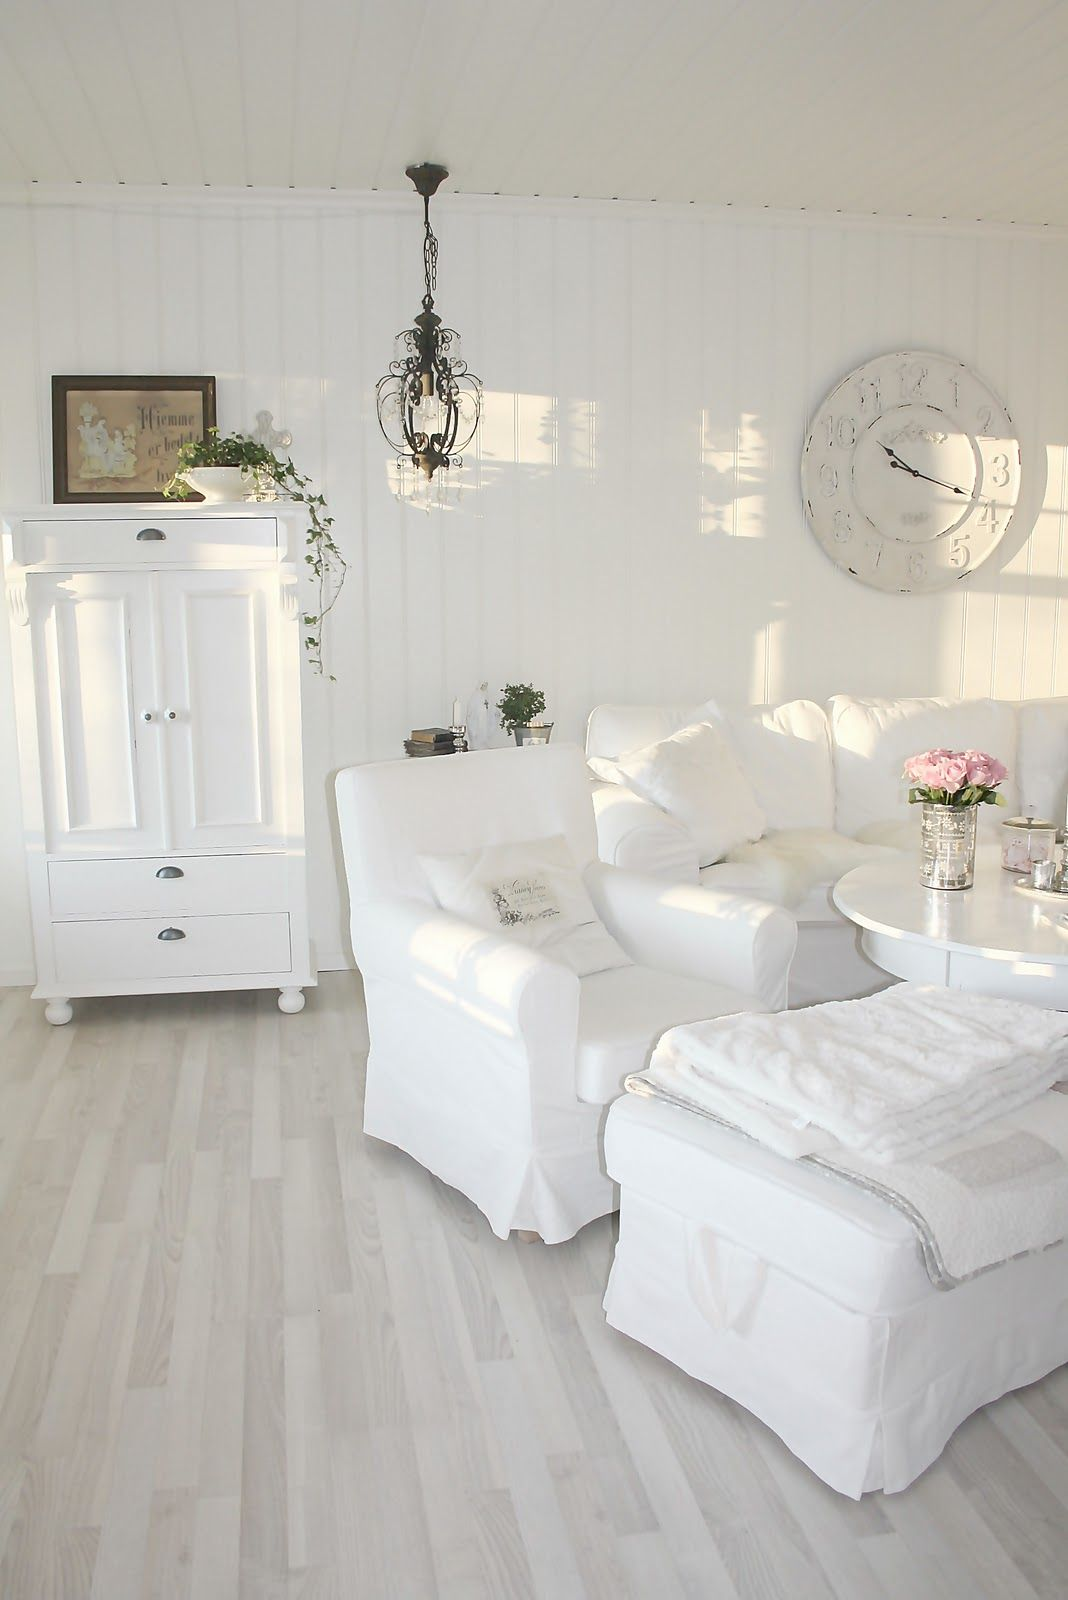 Salon Shabby Chic Pin By Astrid Carlucci On Shabby Chic White Pinterest